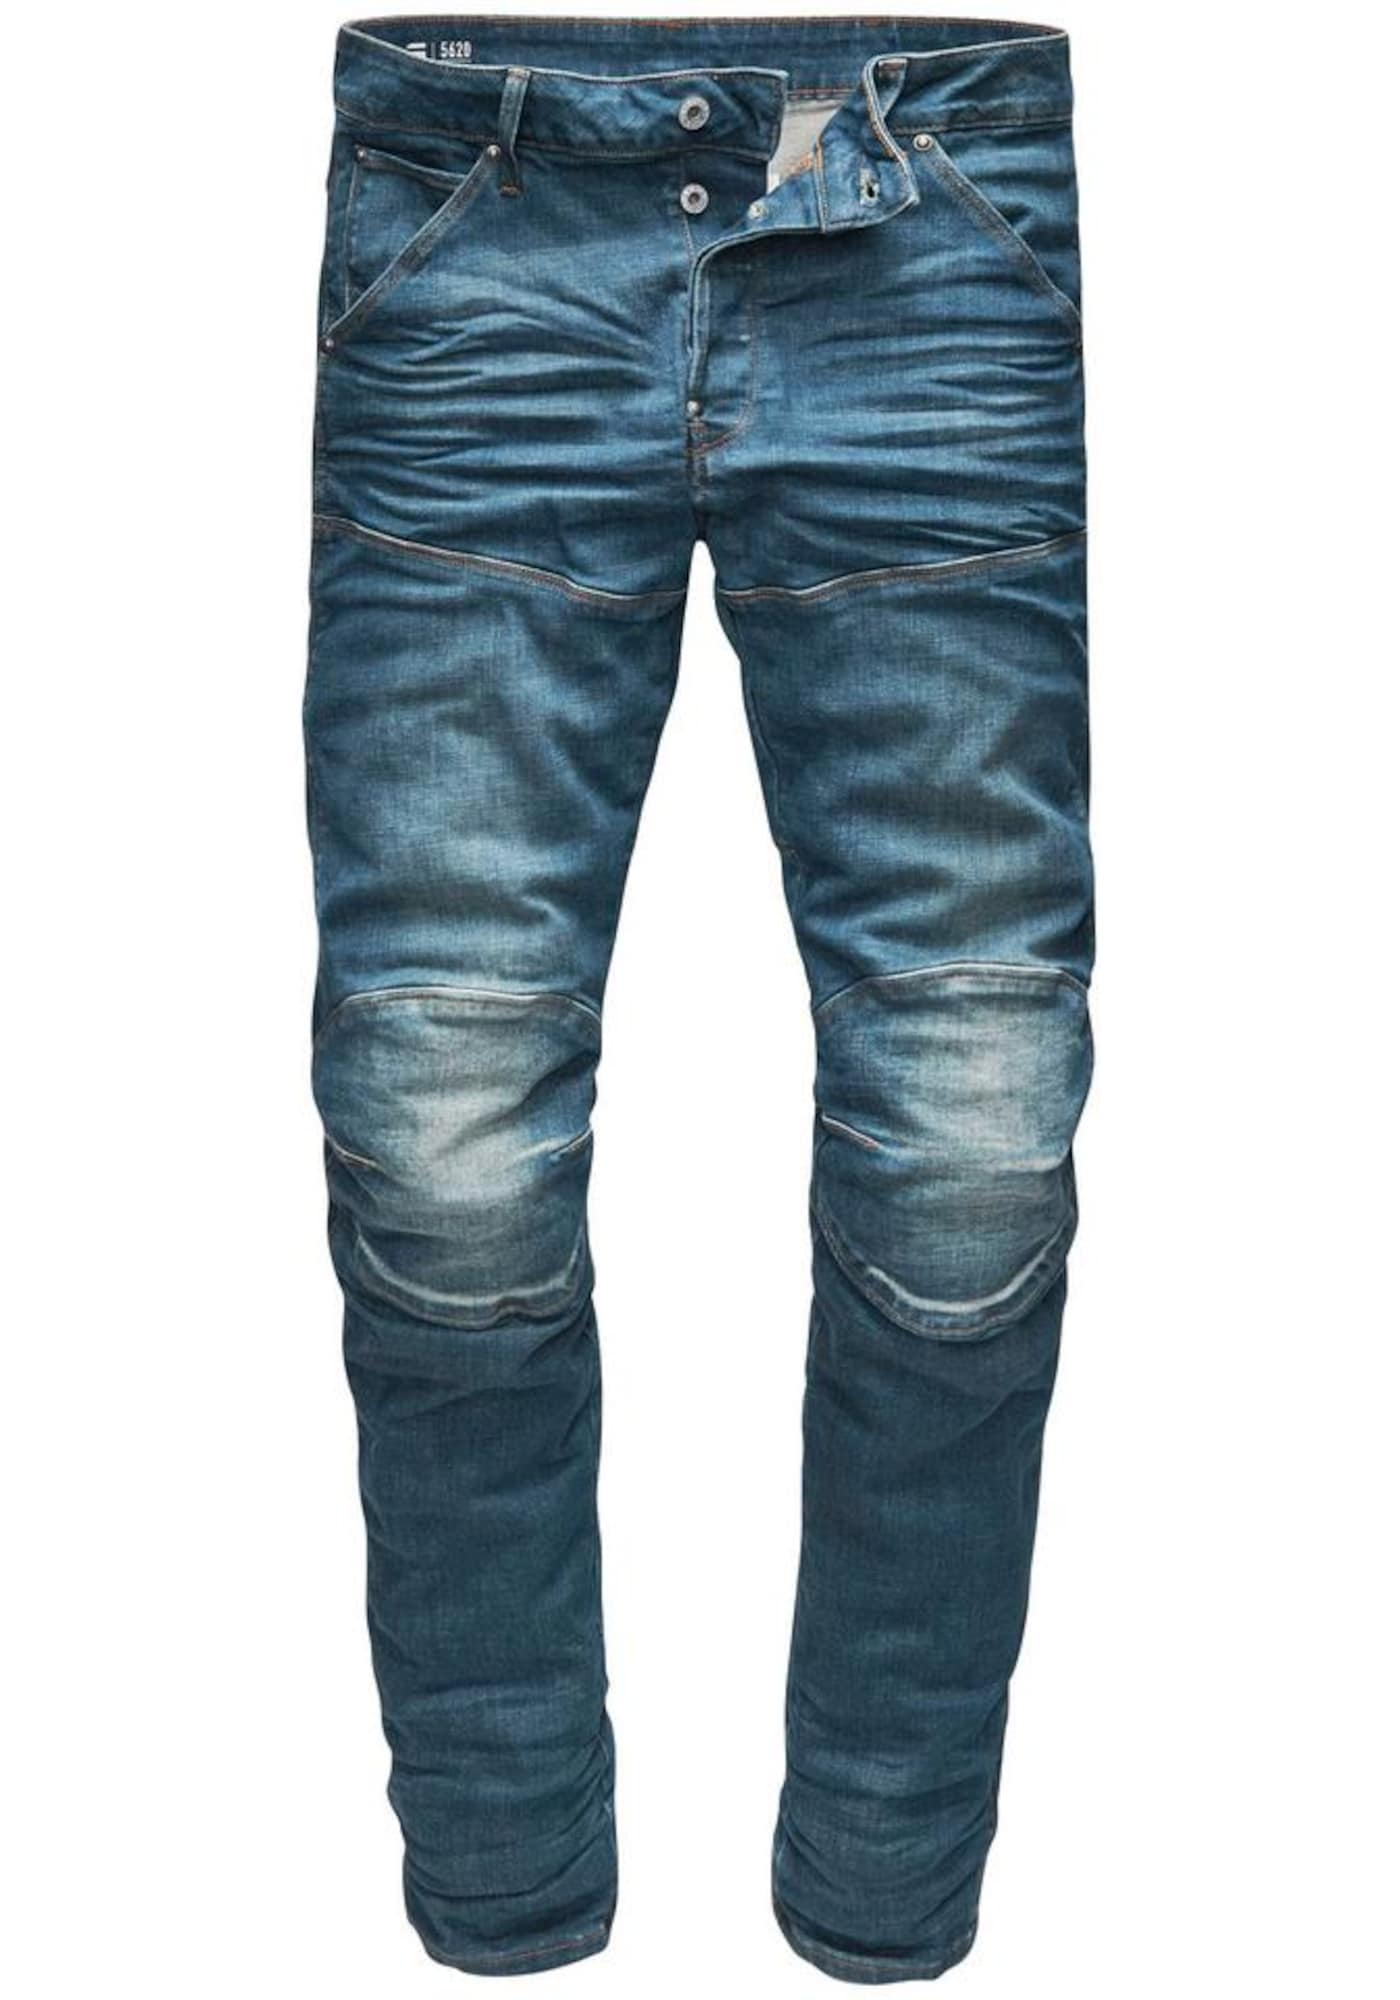 G-STAR RAW Heren Jeans Elwood 5620 3D Slim blauw denim